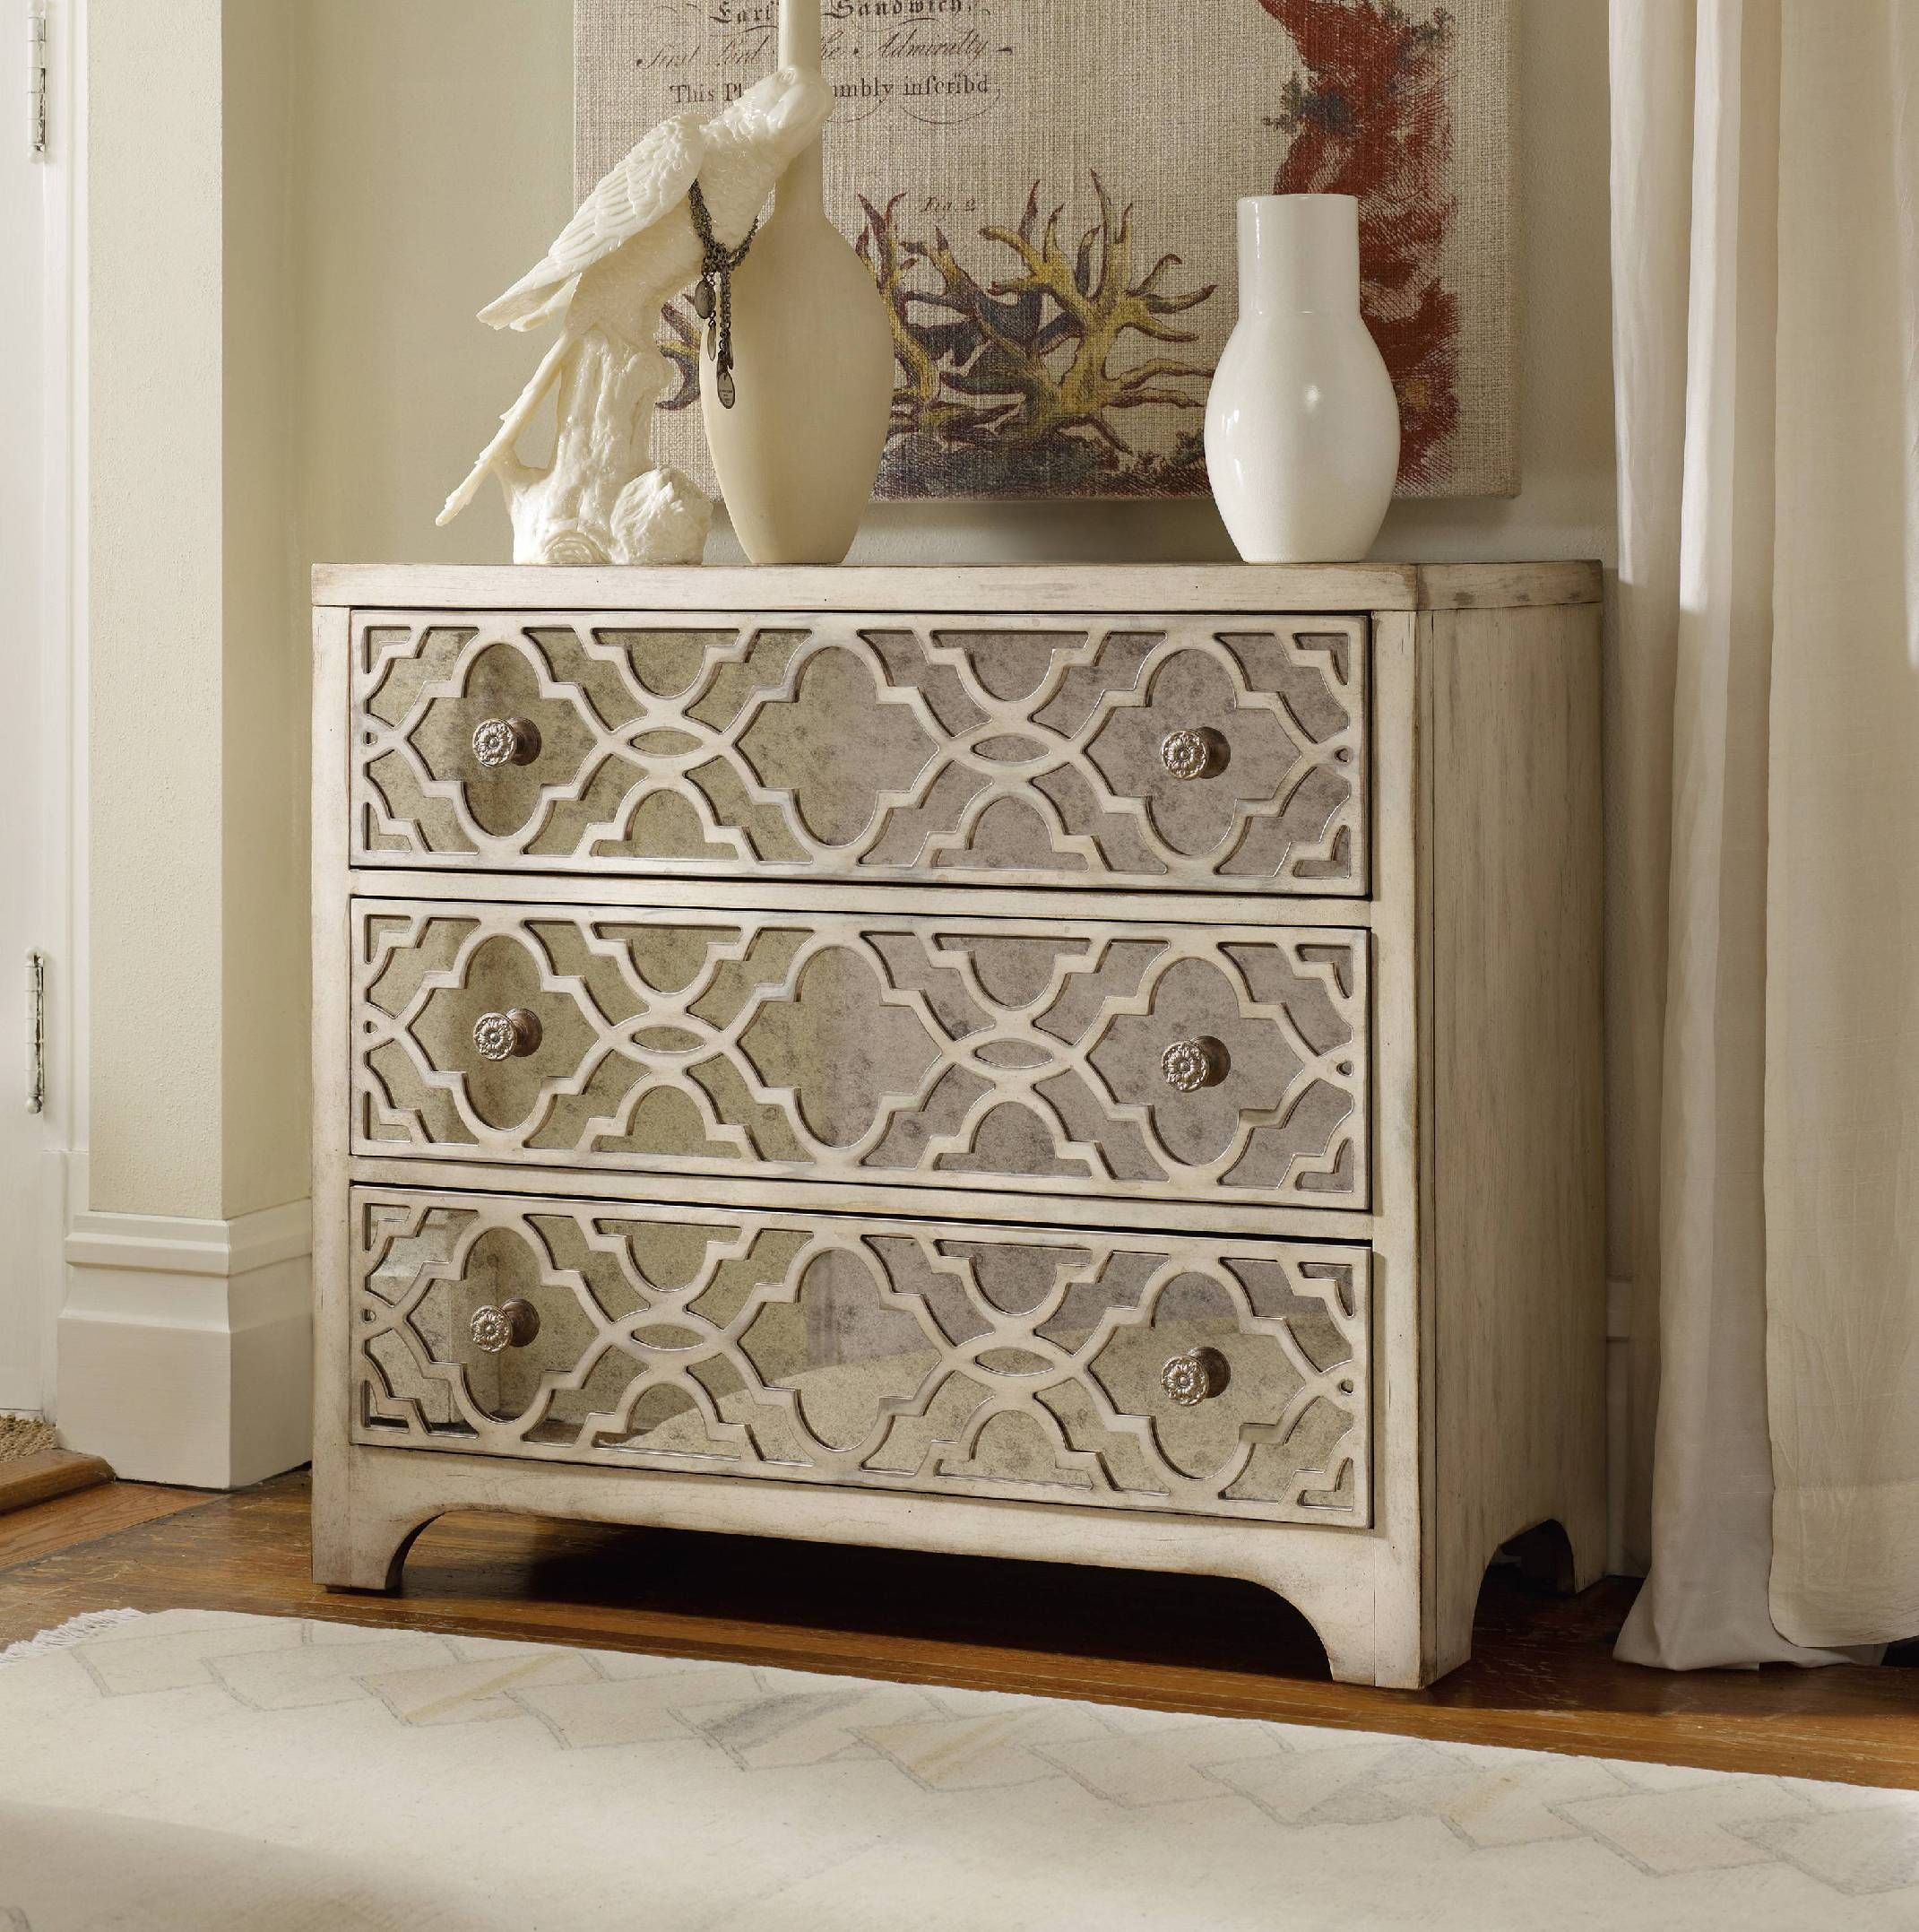 hooker furniture living room sanctuary fretwork chest pearl essence rh pinterest com accent chest for living room accent chest for living room